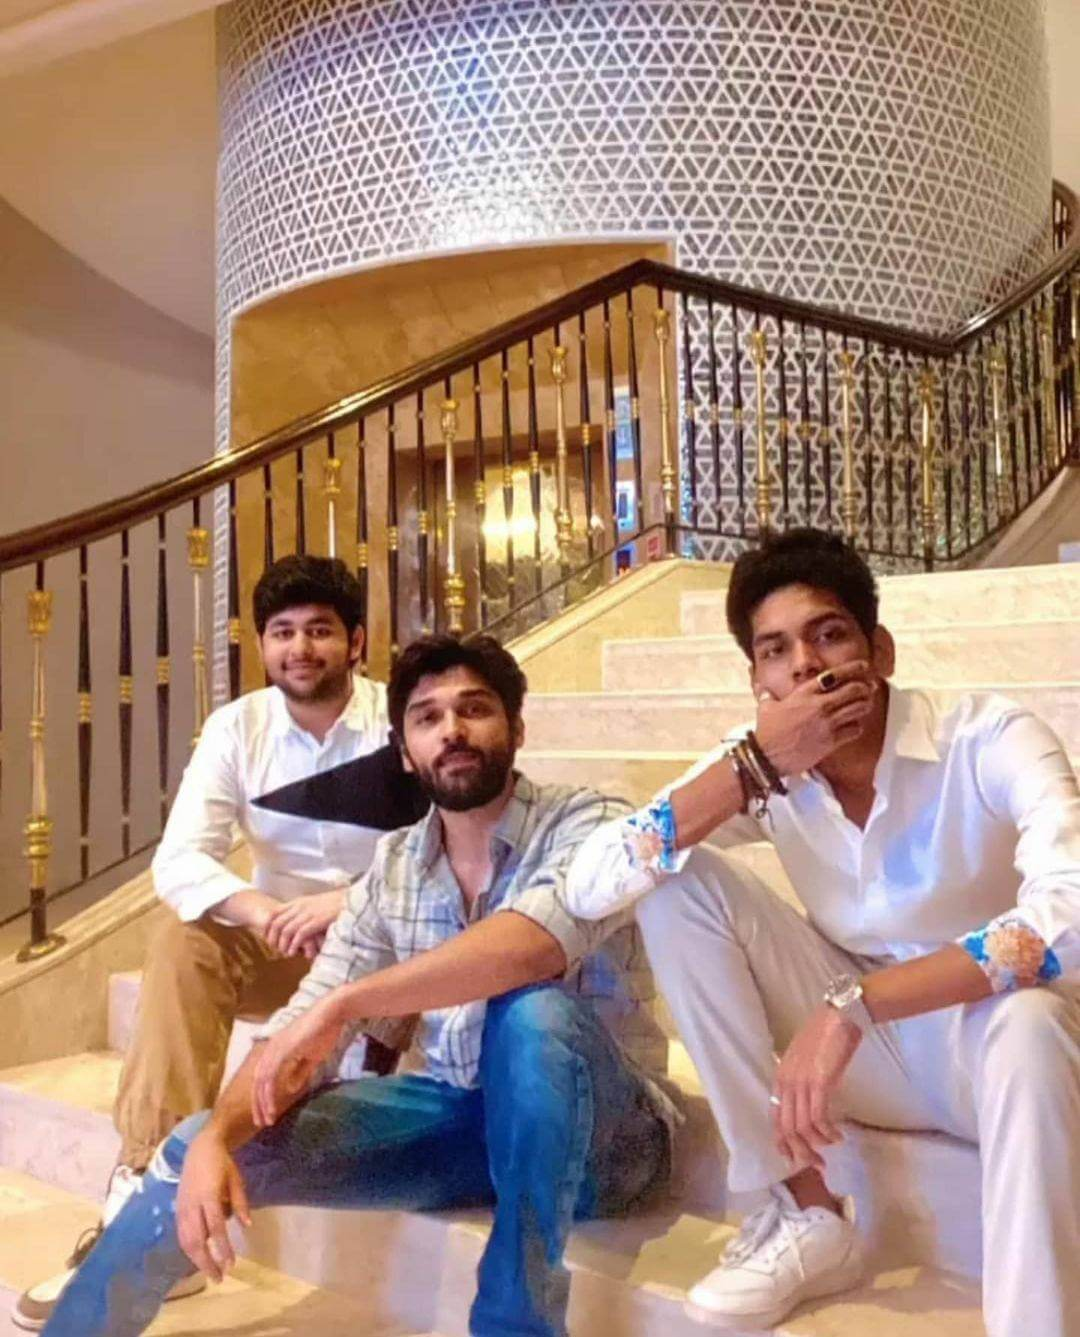 Viral - Sons of legends pose for a pic